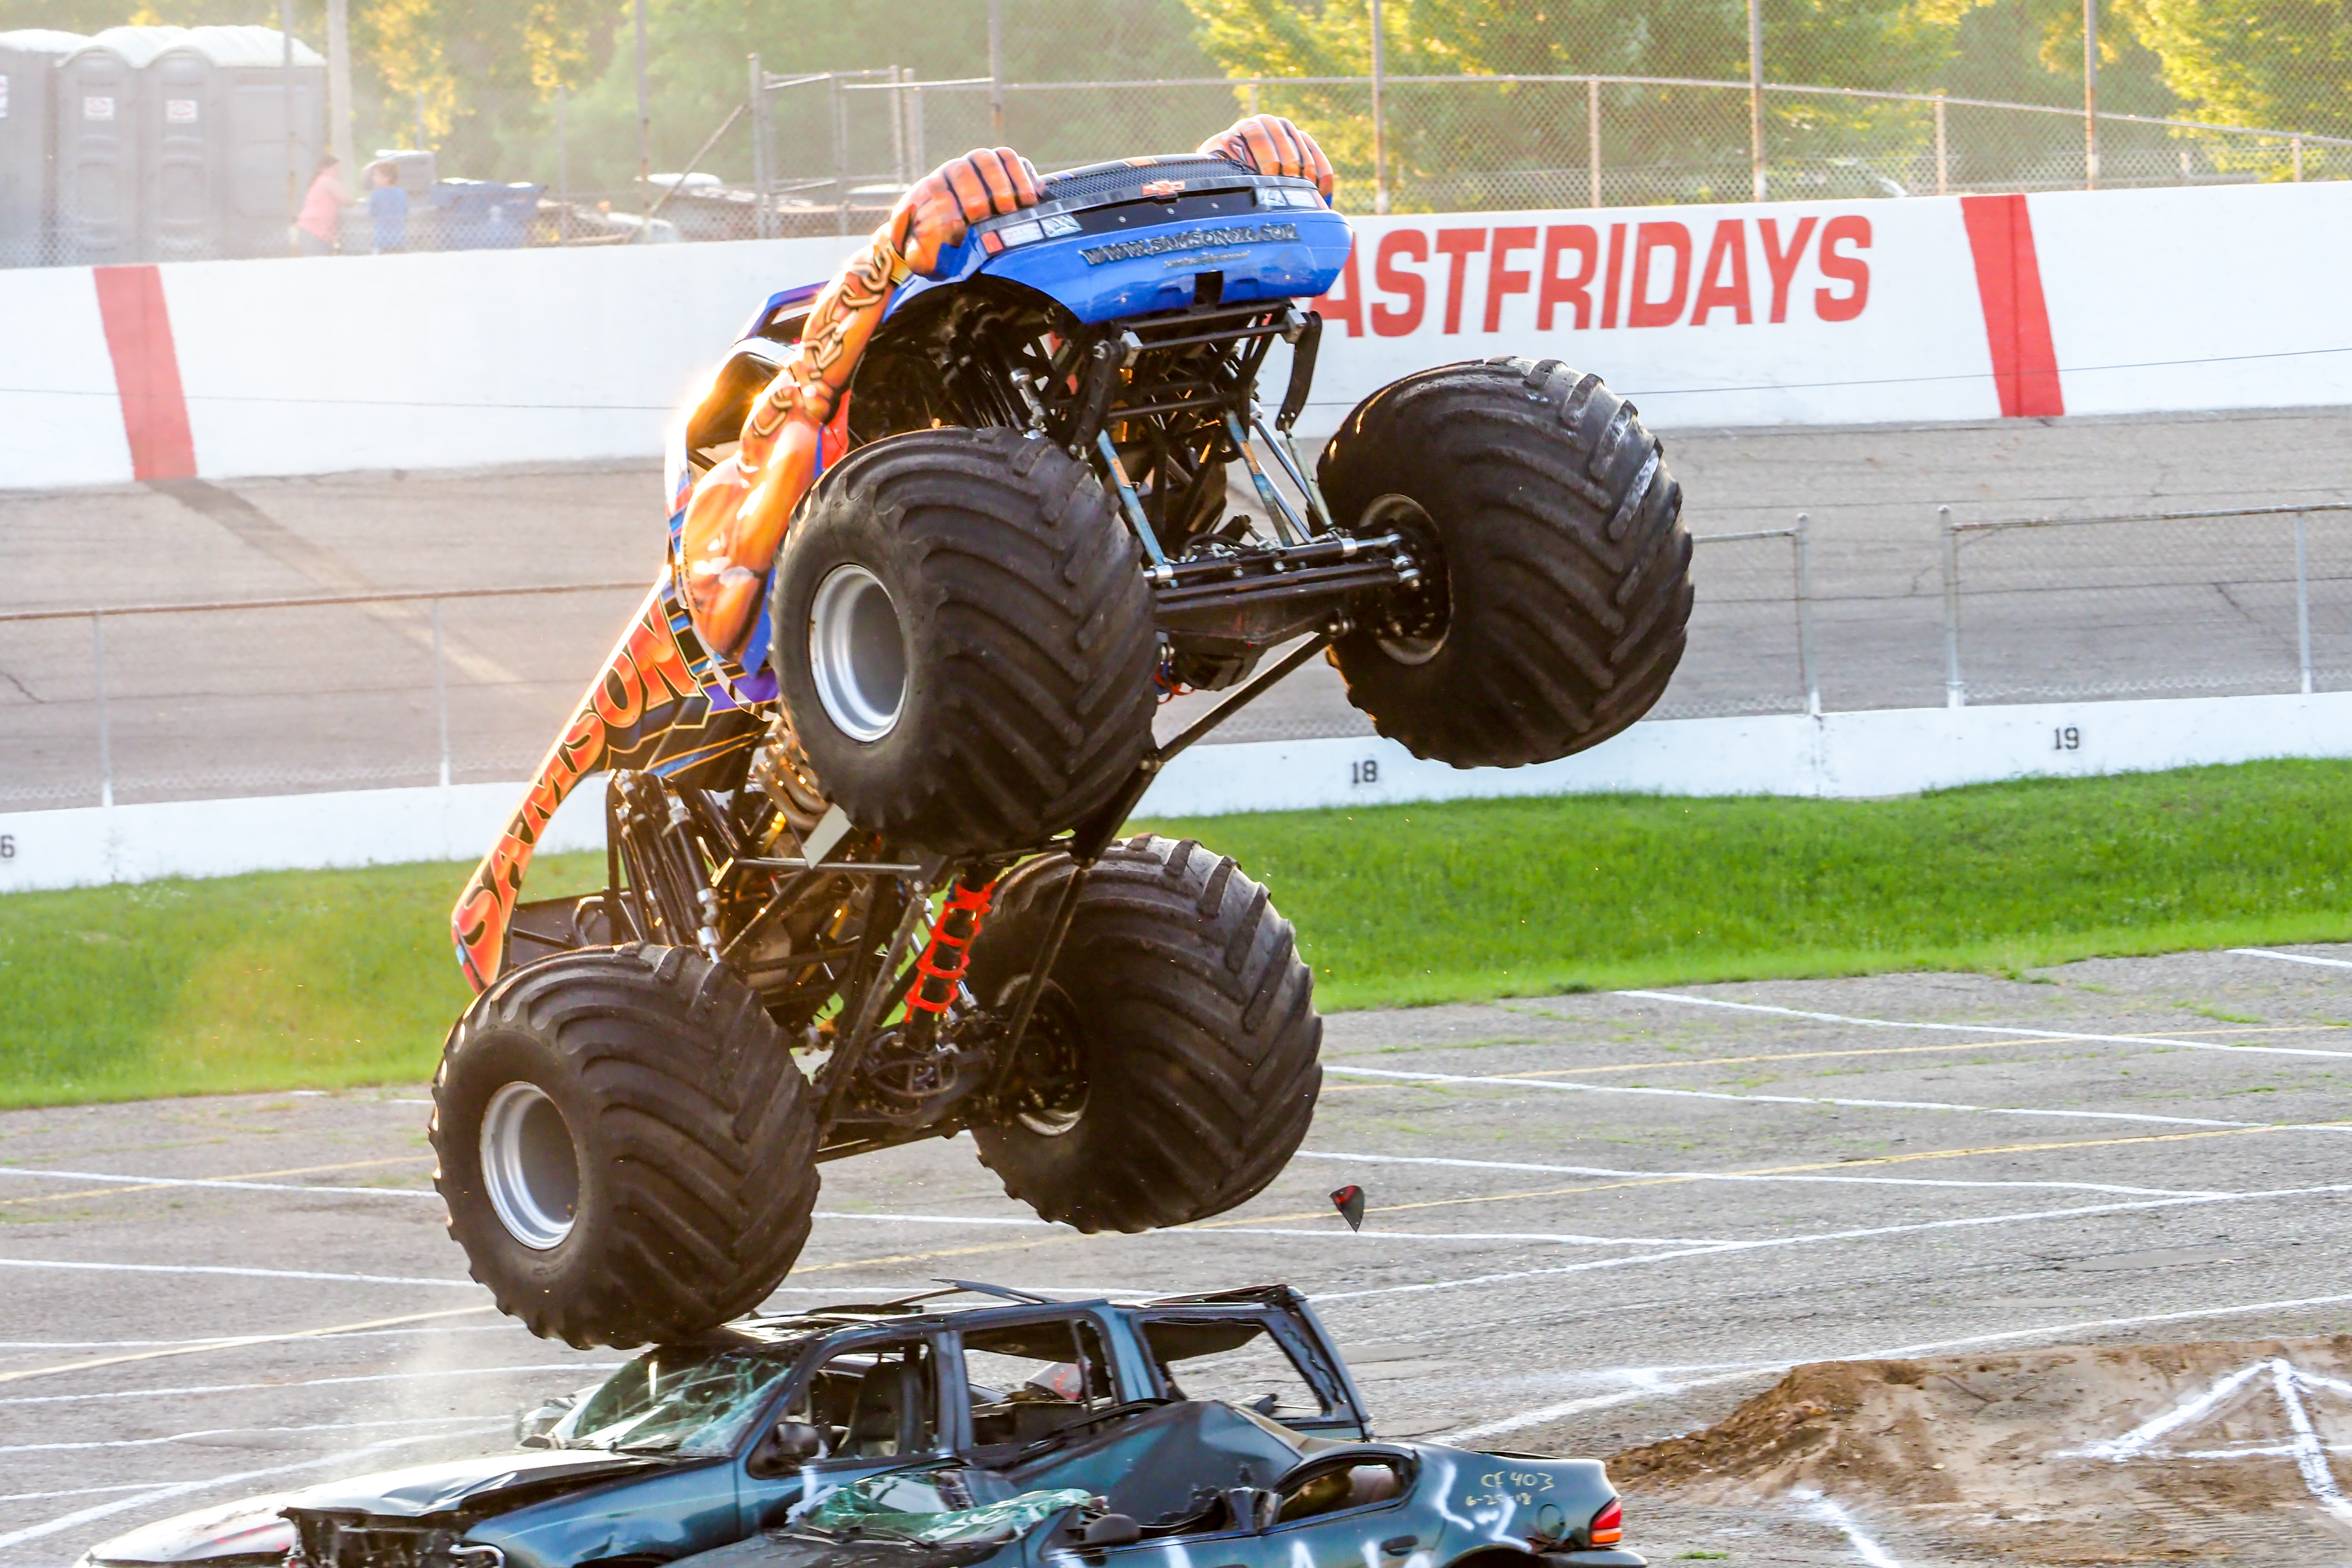 Red White & Boom – Night of Thrills & Spills Featuring Monster Trucks, Motocross Aerial Stunt Show, Stunts By Scarecrow and SW Michigan's #1 Fireworks Spectacular!